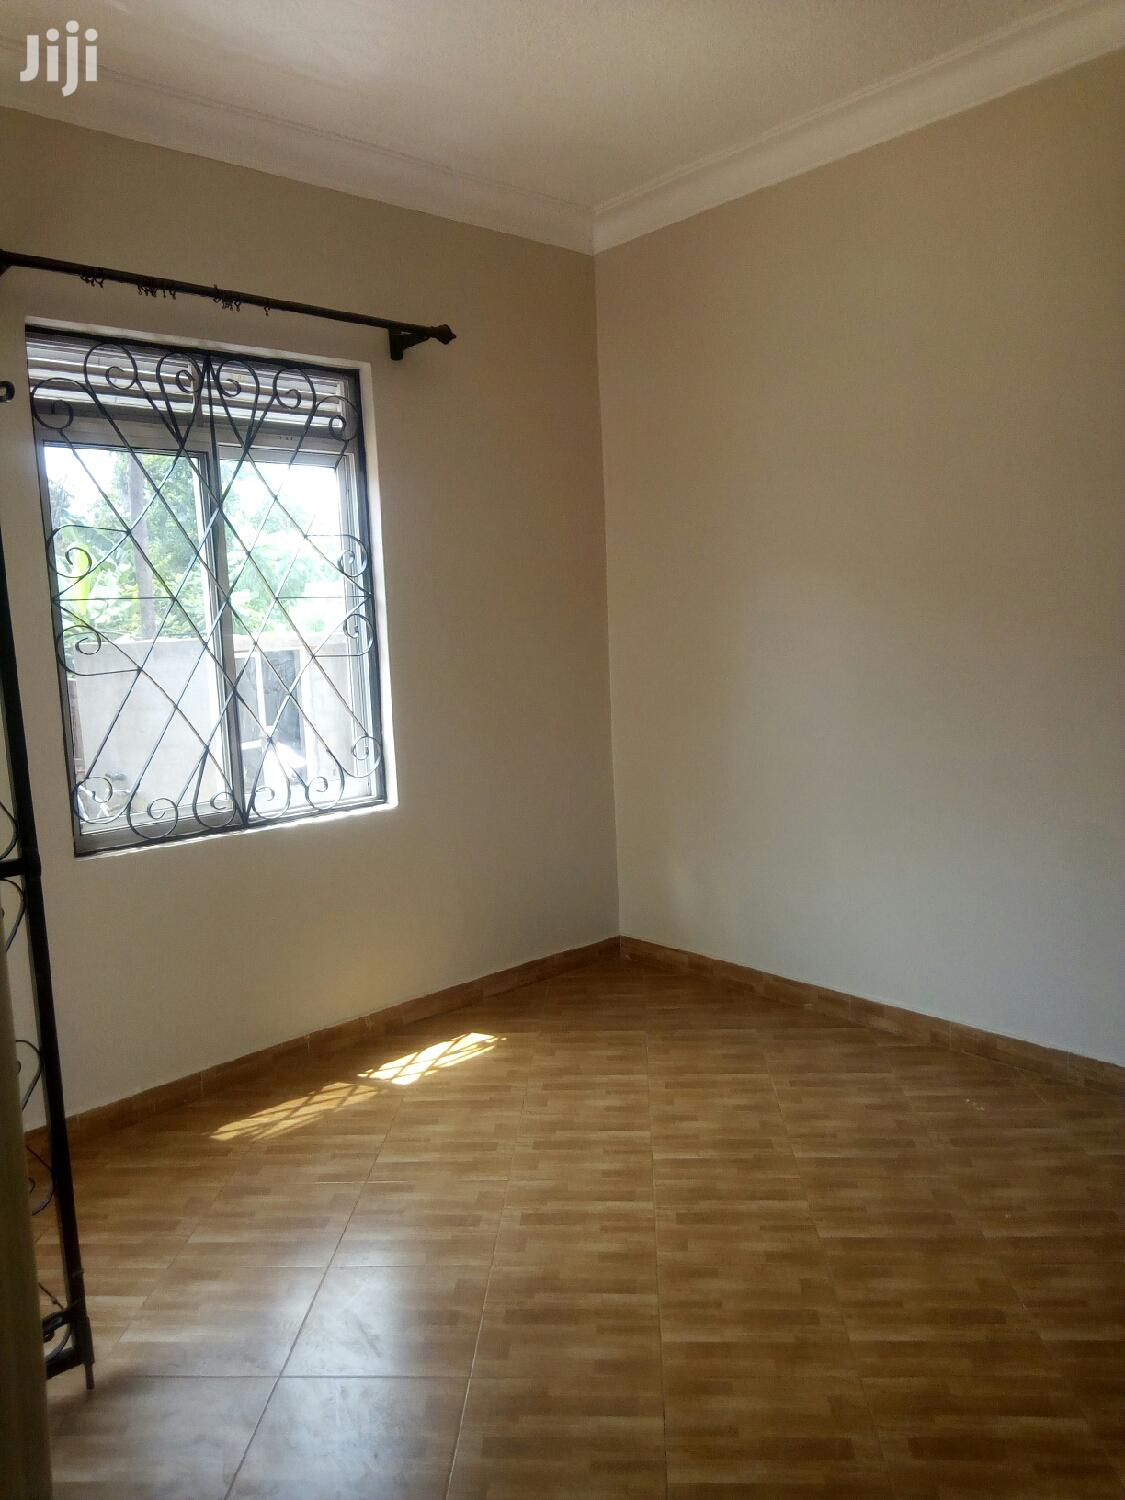 Modern Double Room for Rent in Kisaasi Kyanja. | Houses & Apartments For Rent for sale in Kampala, Central Region, Uganda